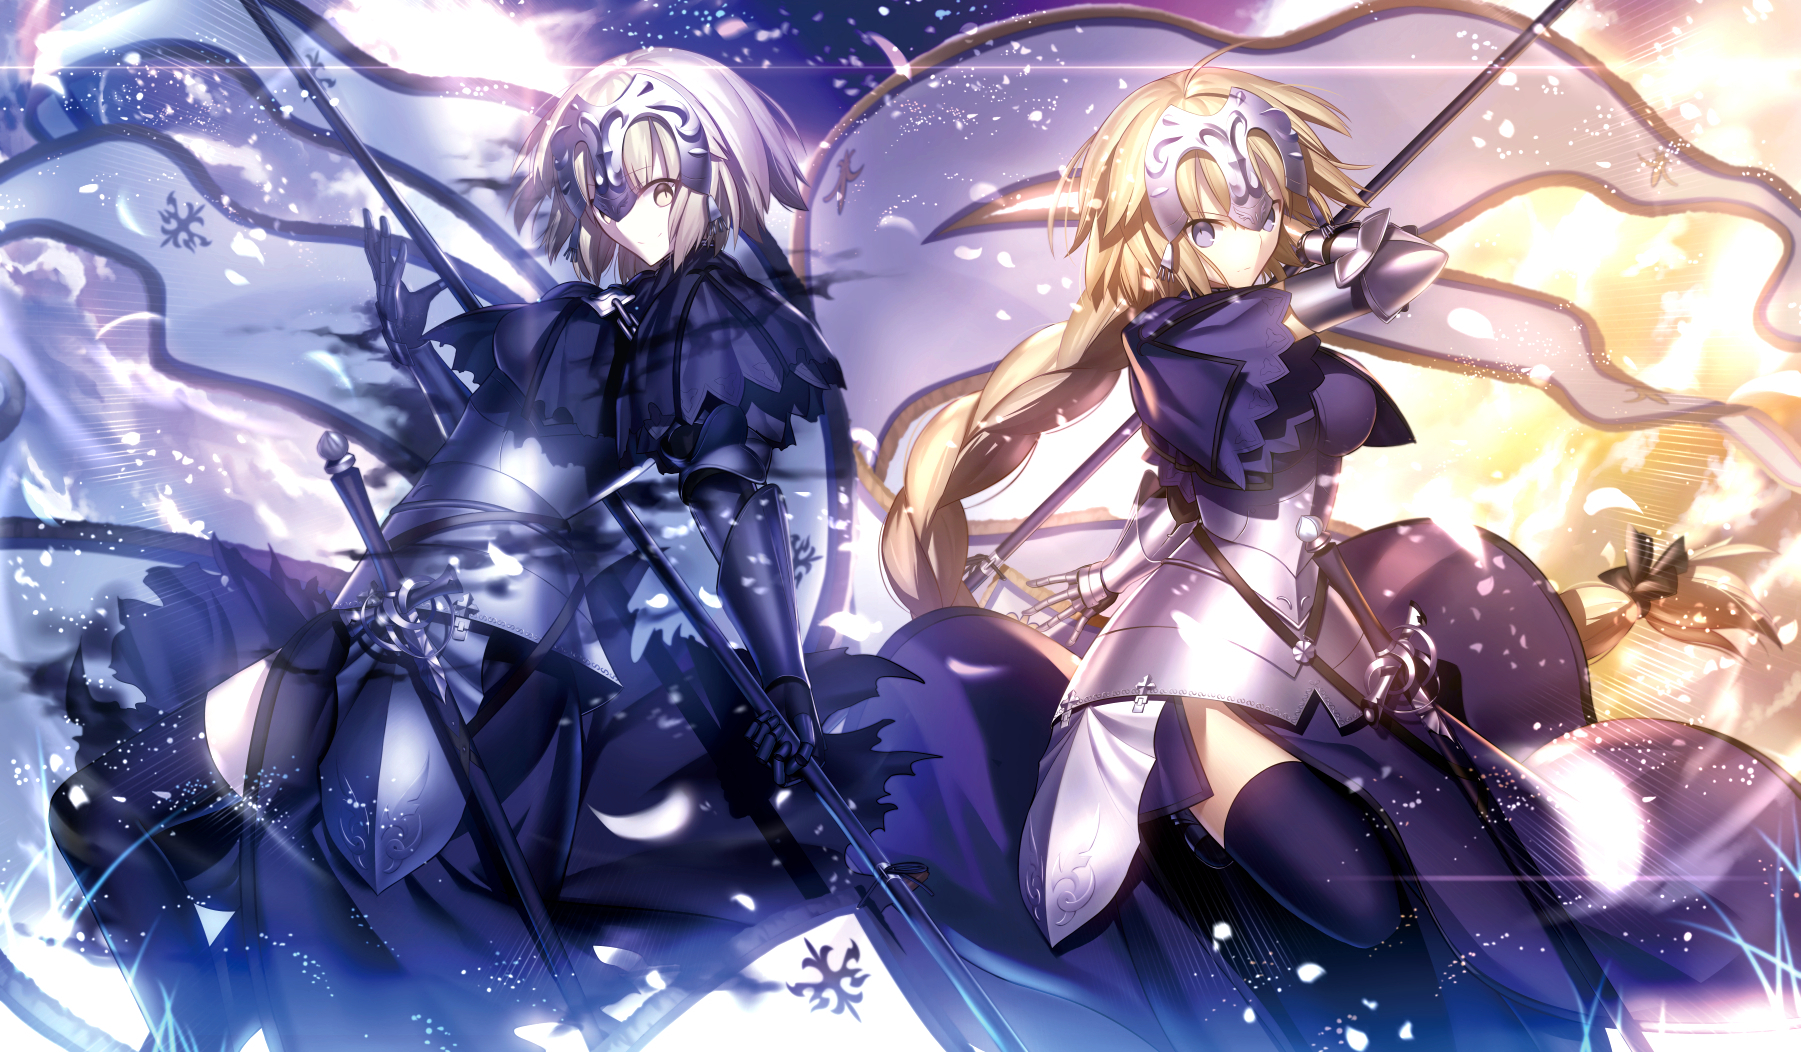 Fate Grand Order Wallpaper Hd Posted By Ethan Cunningham